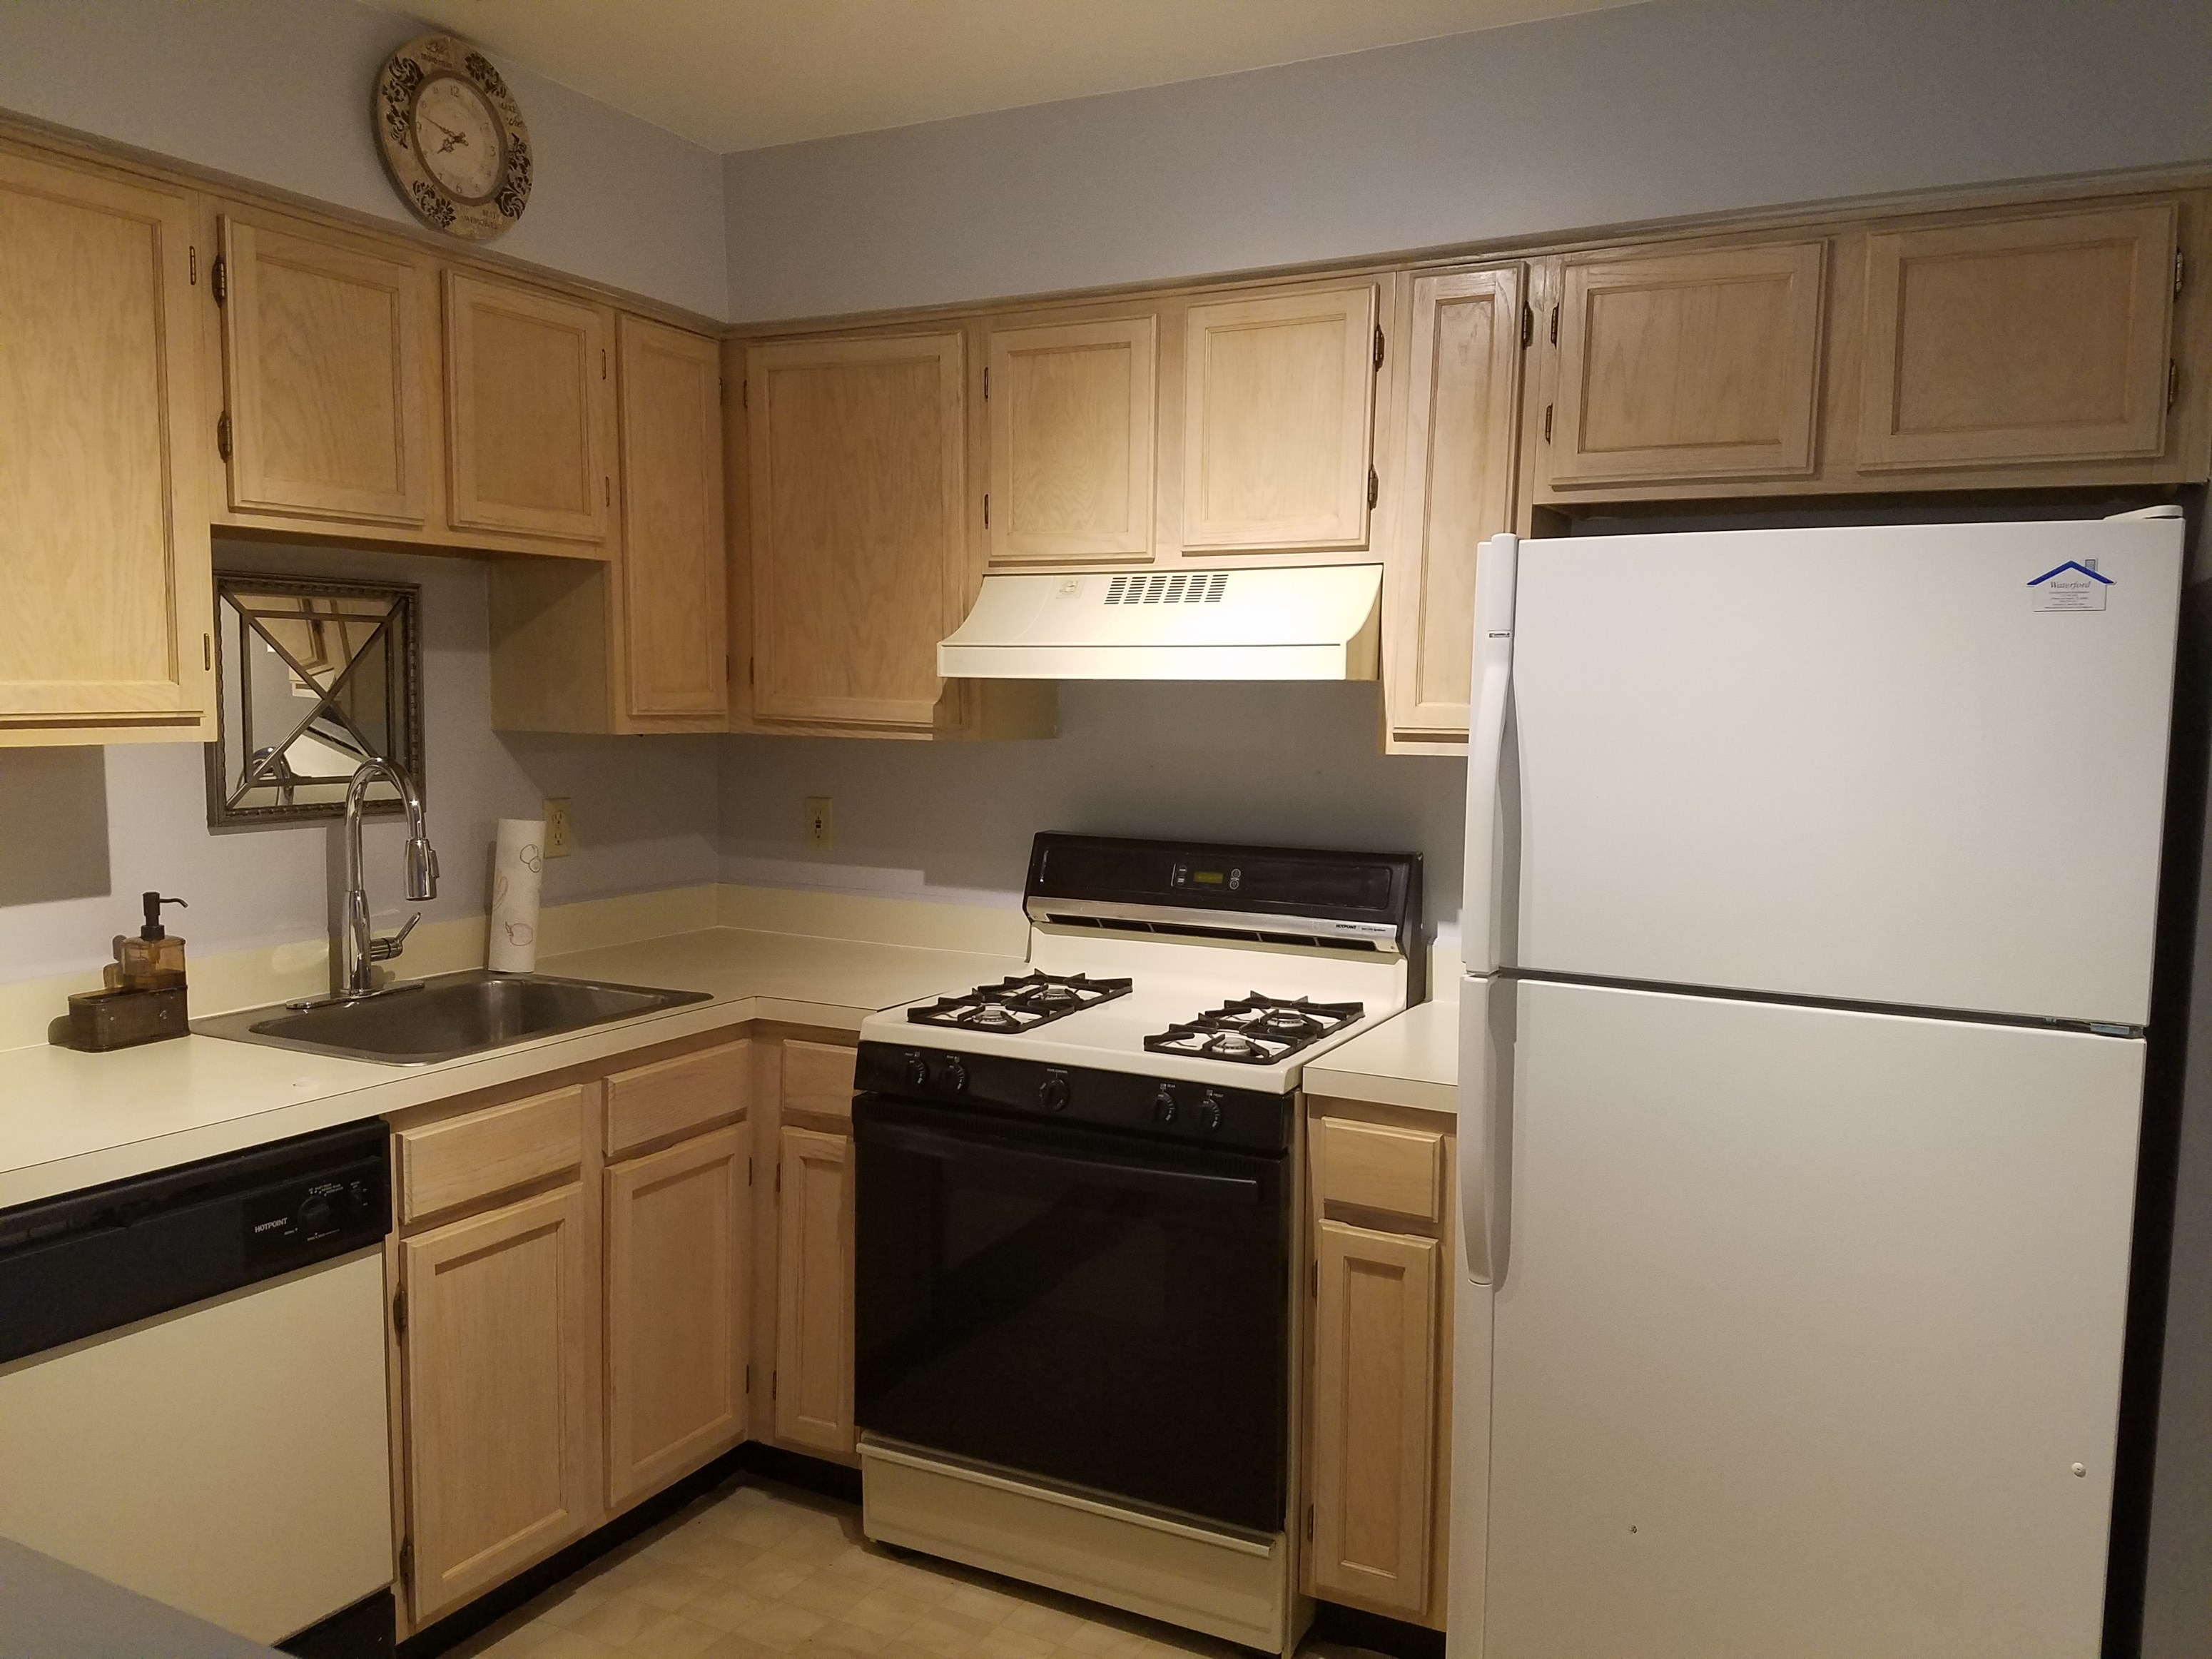 Meticulously Kept Two Bedroom, Two Bath Condo In Waterford Dr In Edison  |  2 BHK Condo in Edison, NJ | 974459 - Sulekha Rentals